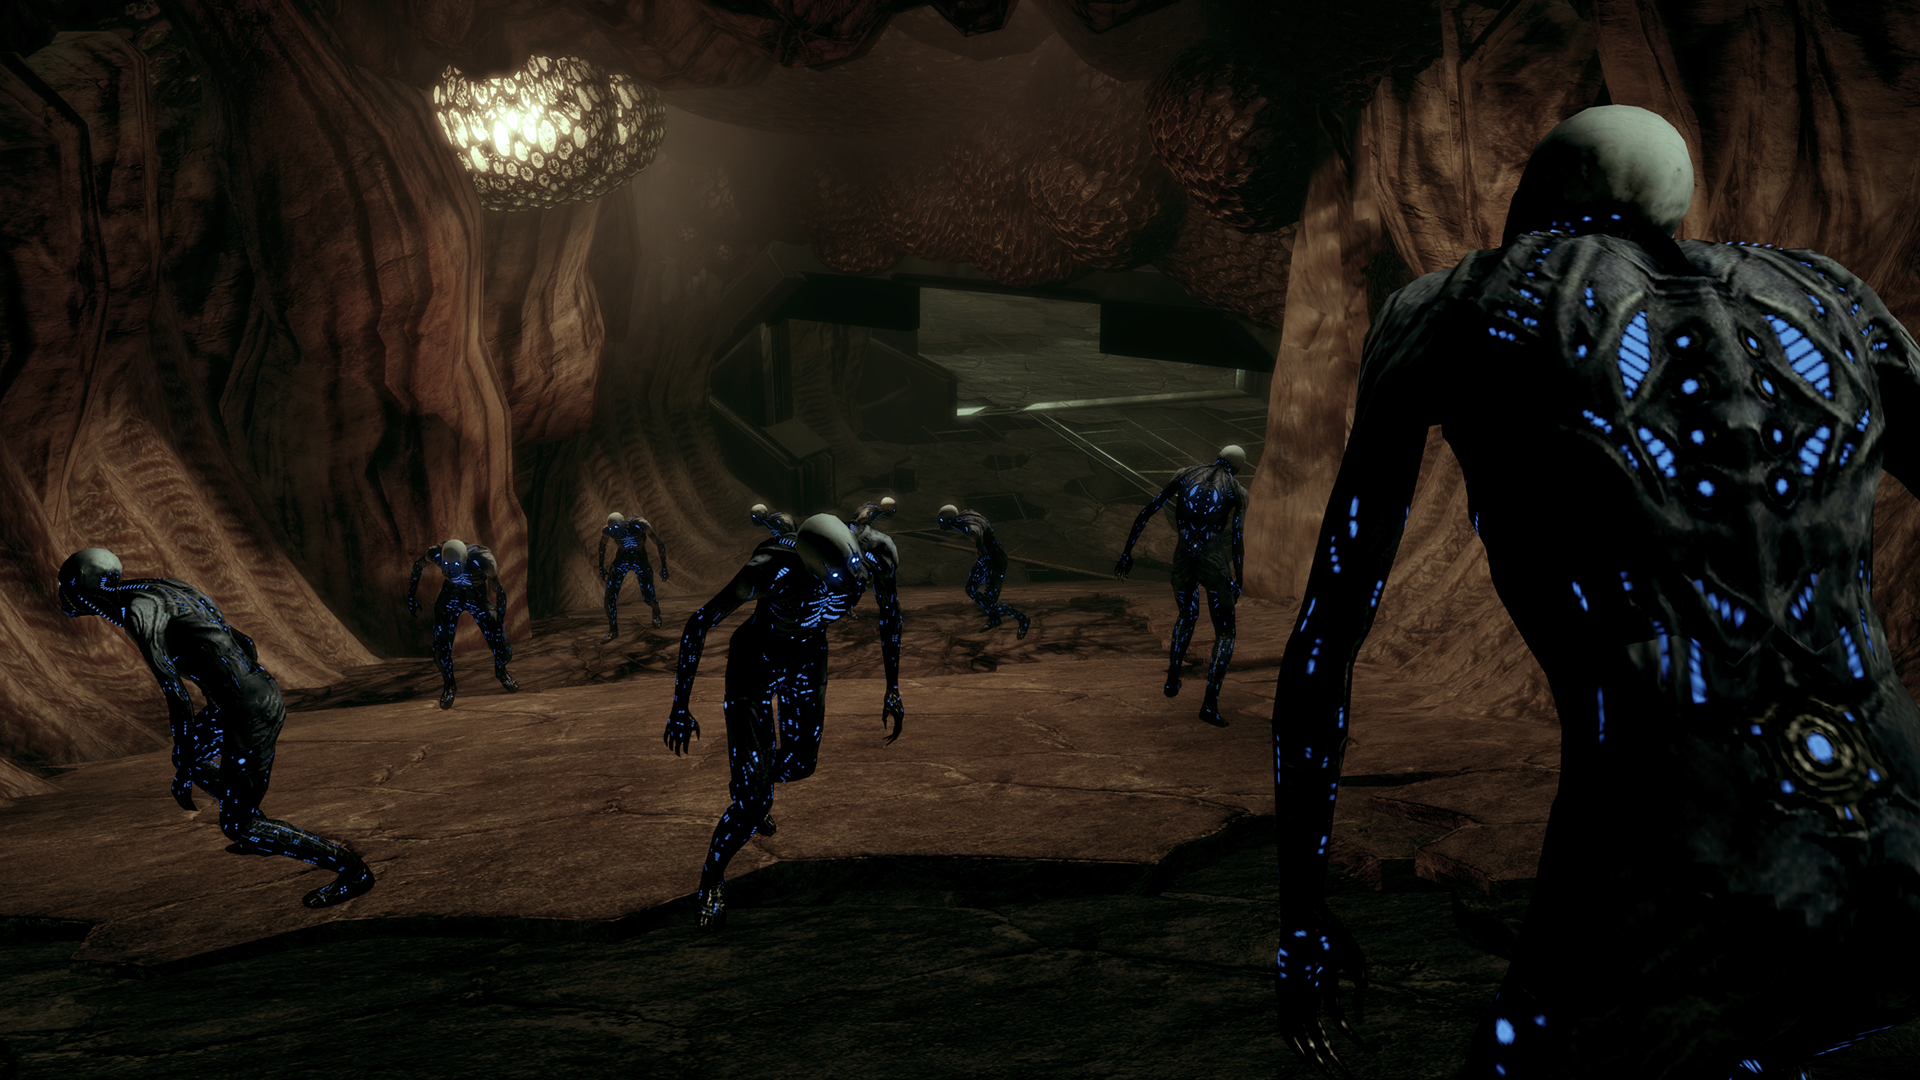 Mass Effect 2 Through The Eyes Of TheSniper